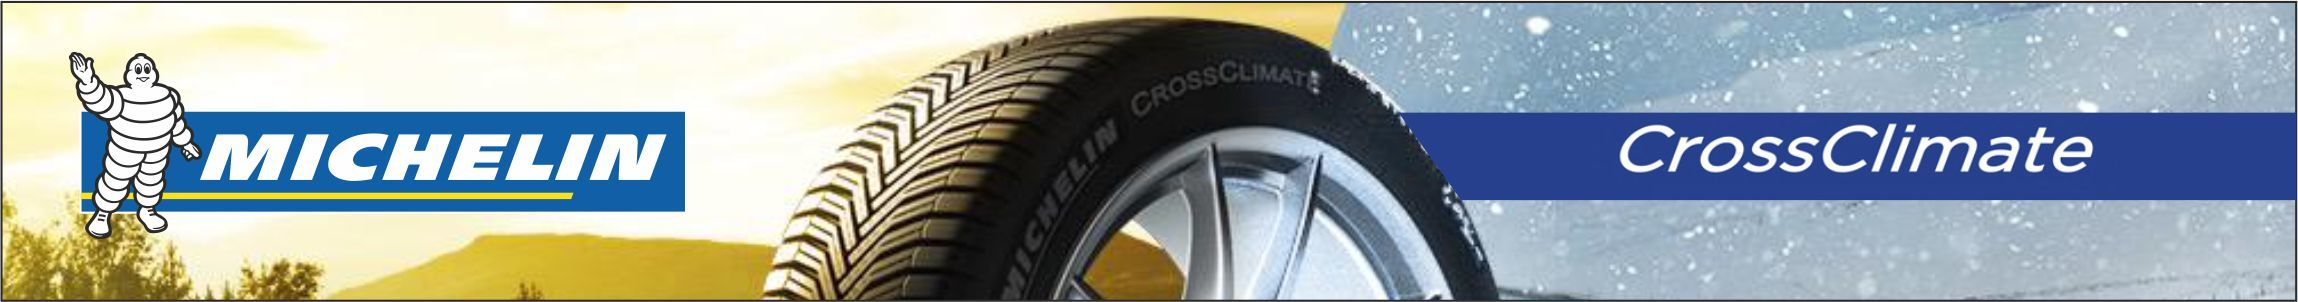 CROSSCLIMATE+